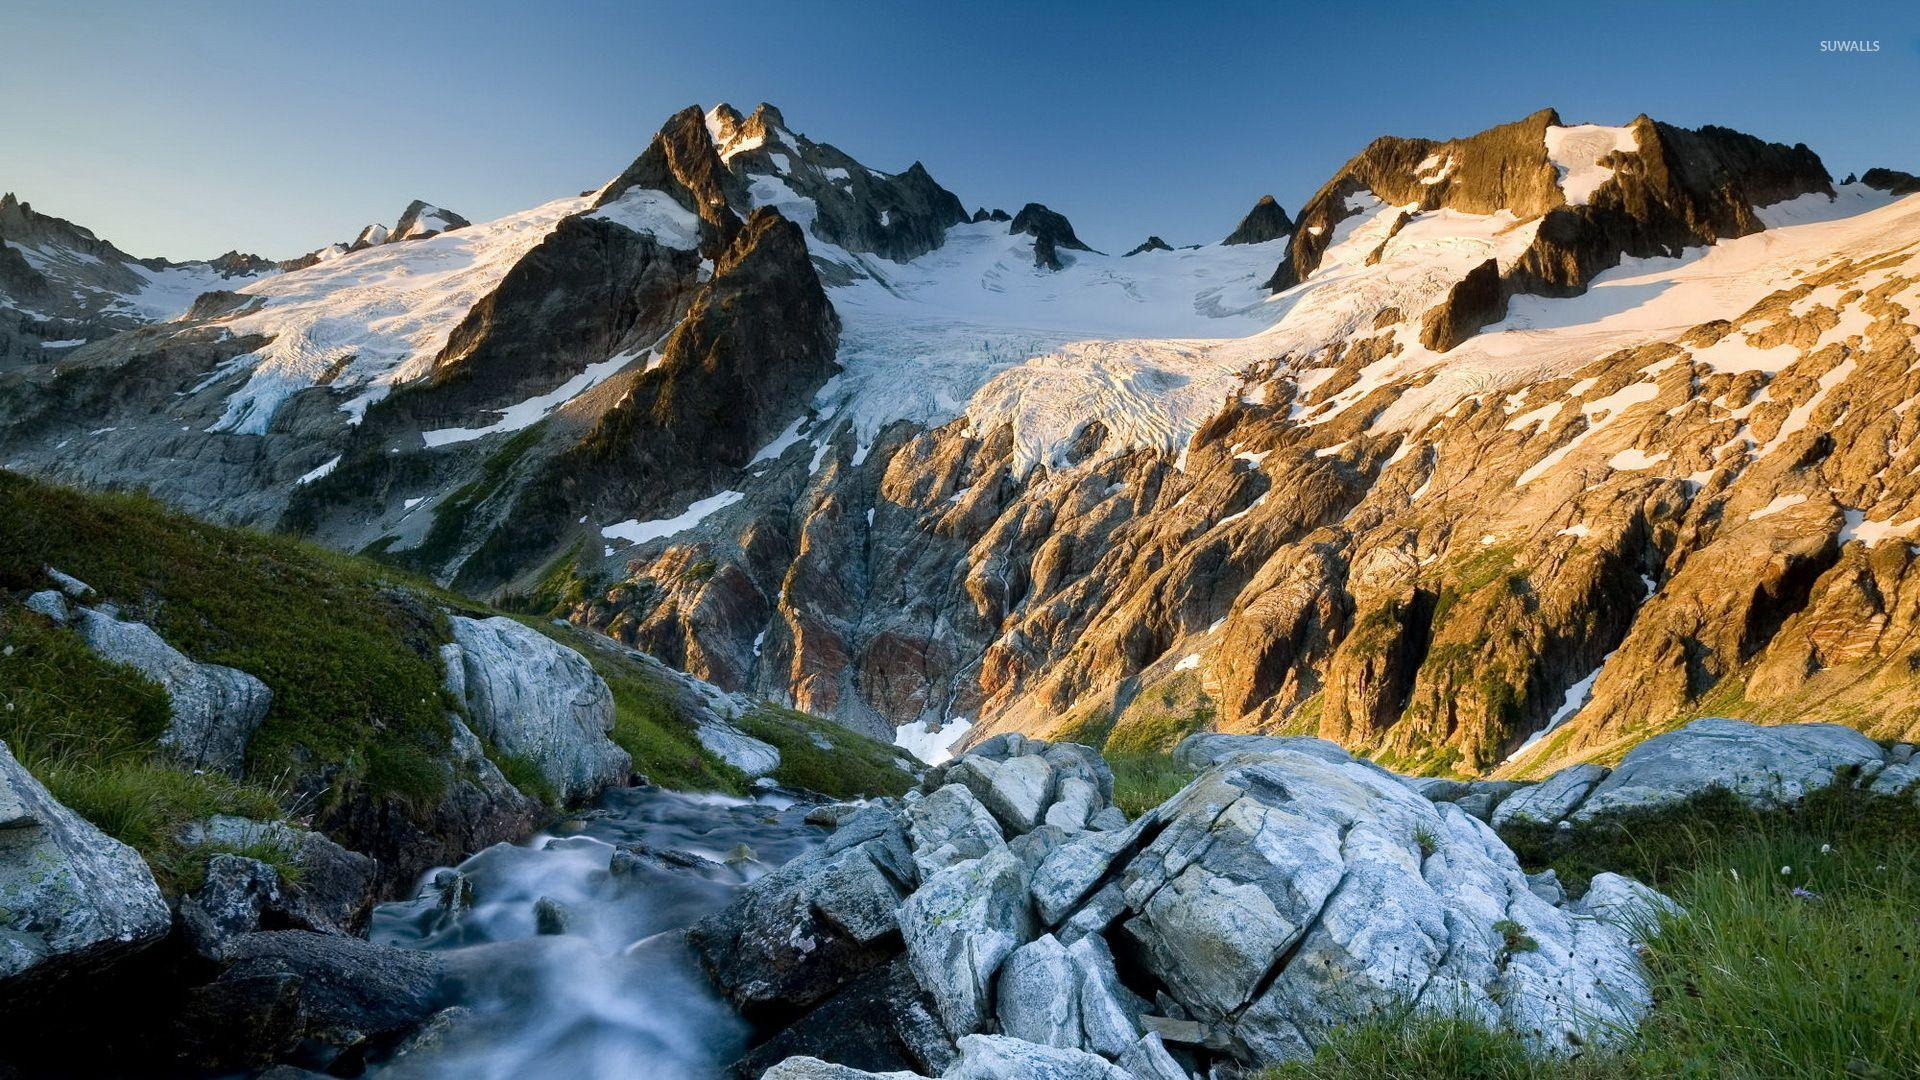 Glacier Peak Wilderness wallpaper - Nature wallpapers - #5019